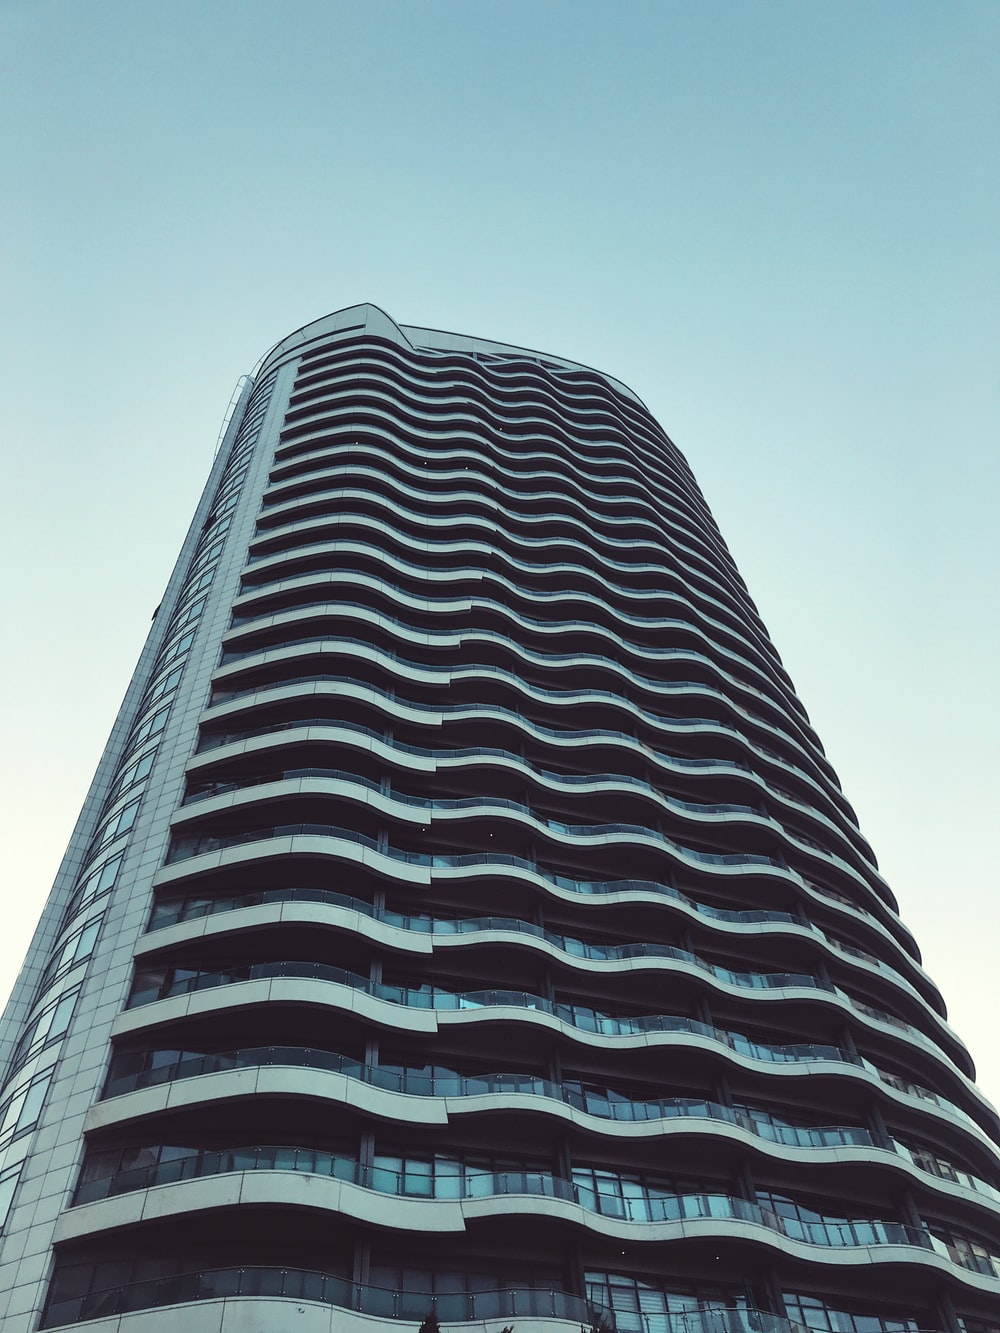 worms-eye view of gray tall building